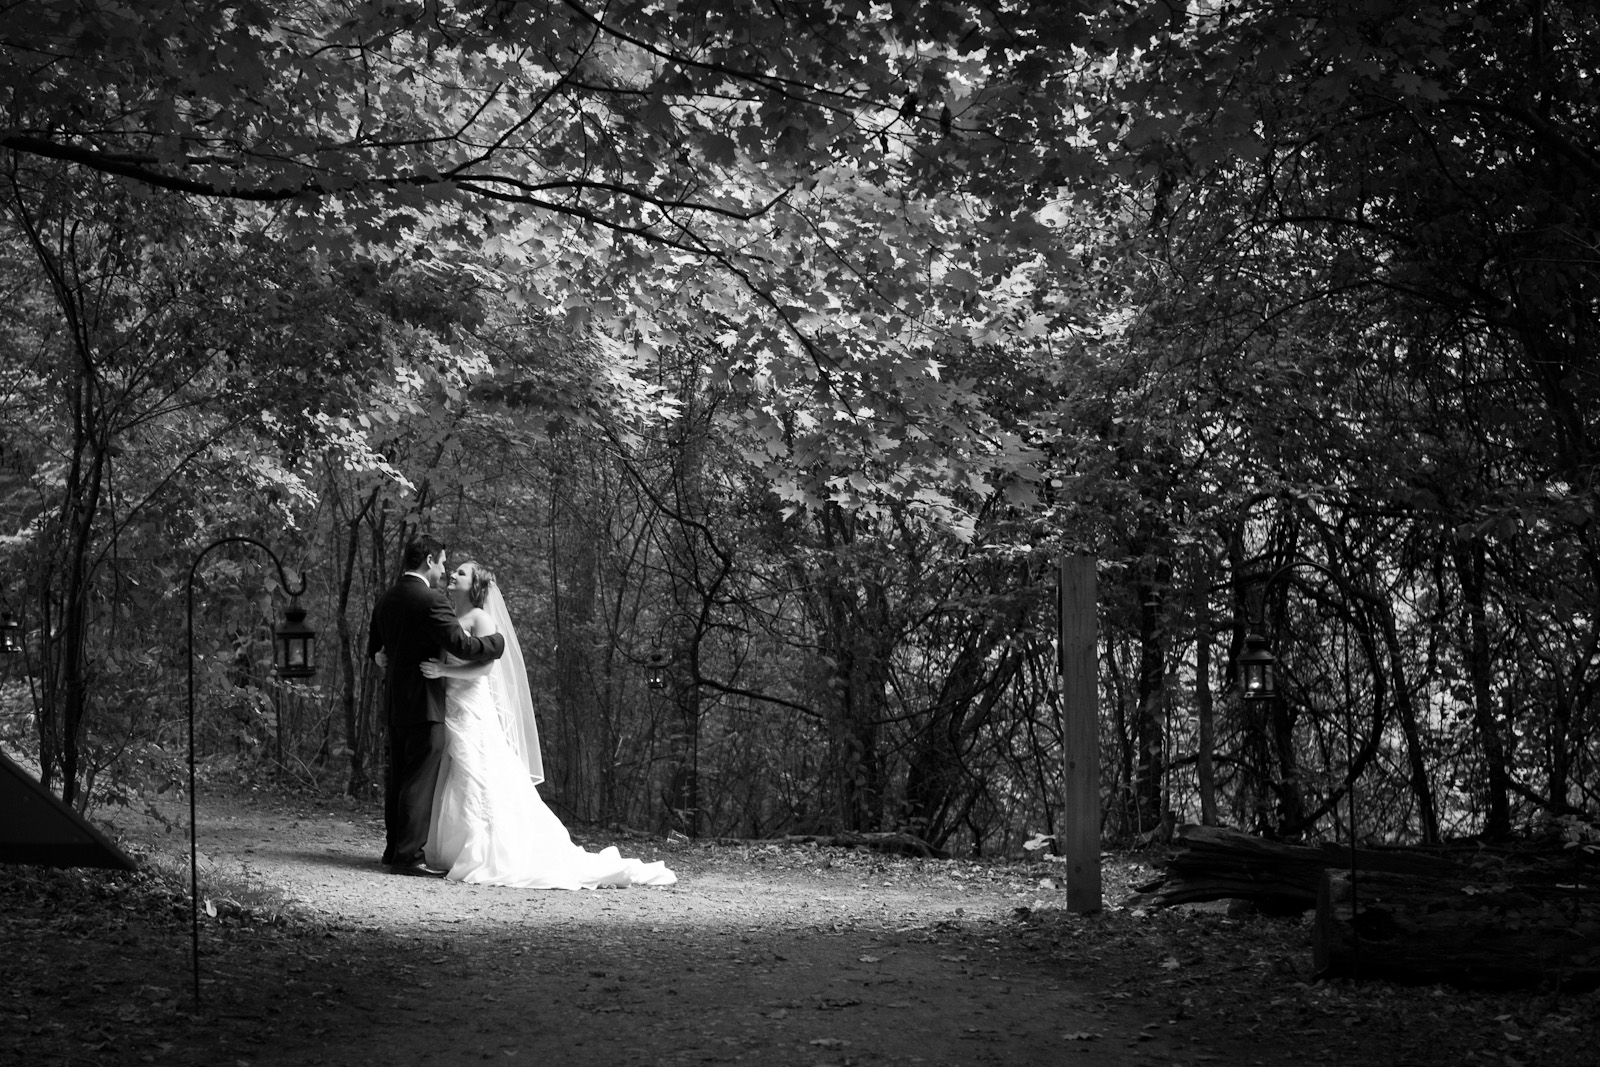 Wedding, couple in forest, trees, bride, groom, black and white photo